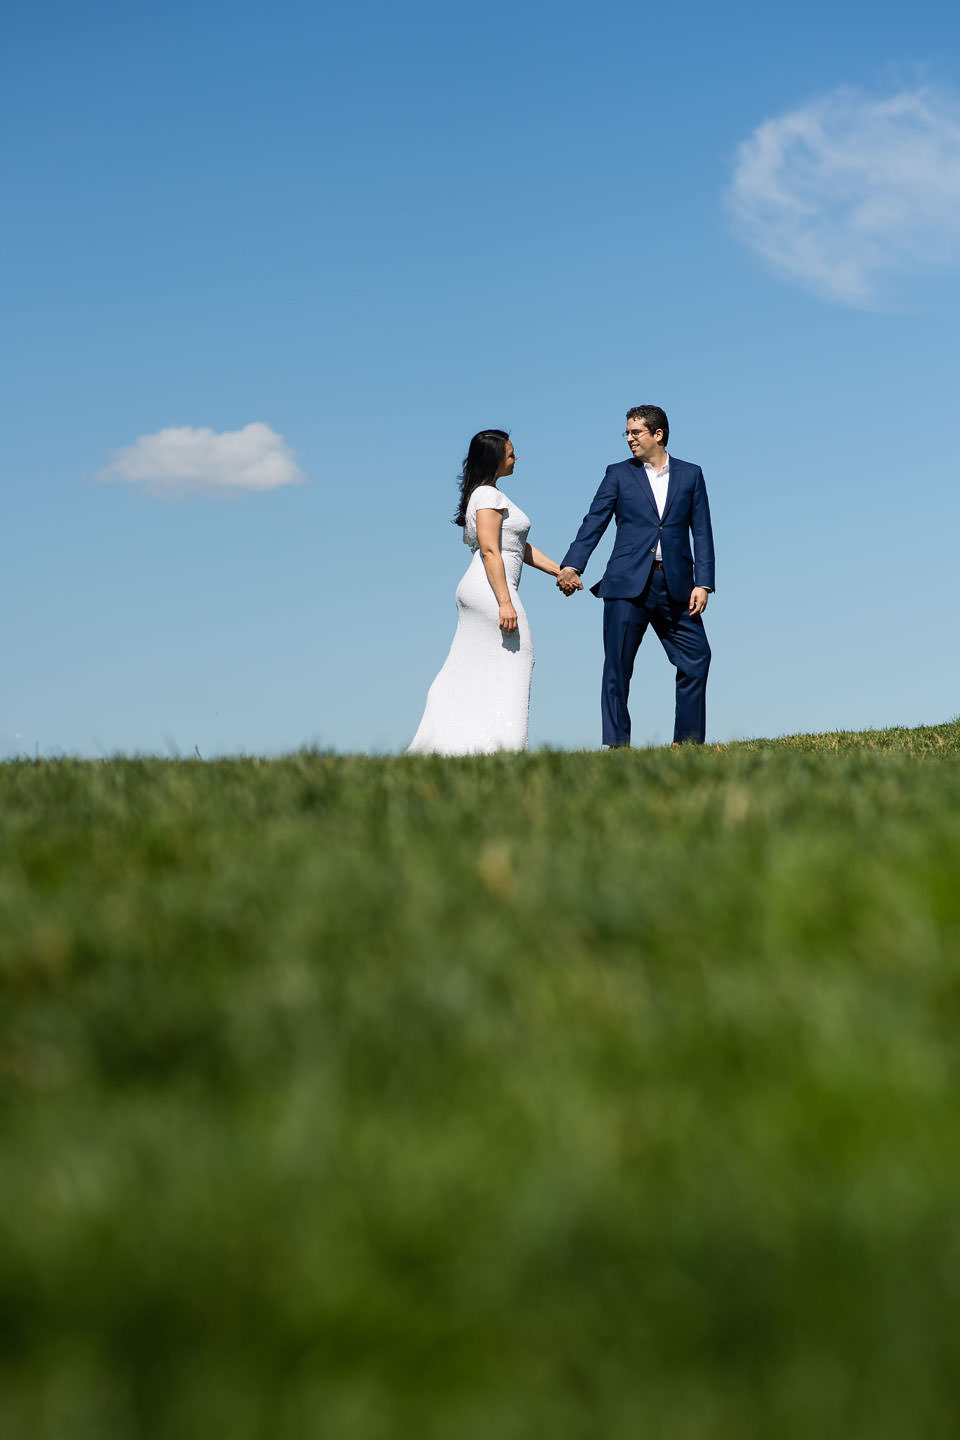 couple holding hands on grassy hill against blue sky in formal outfits